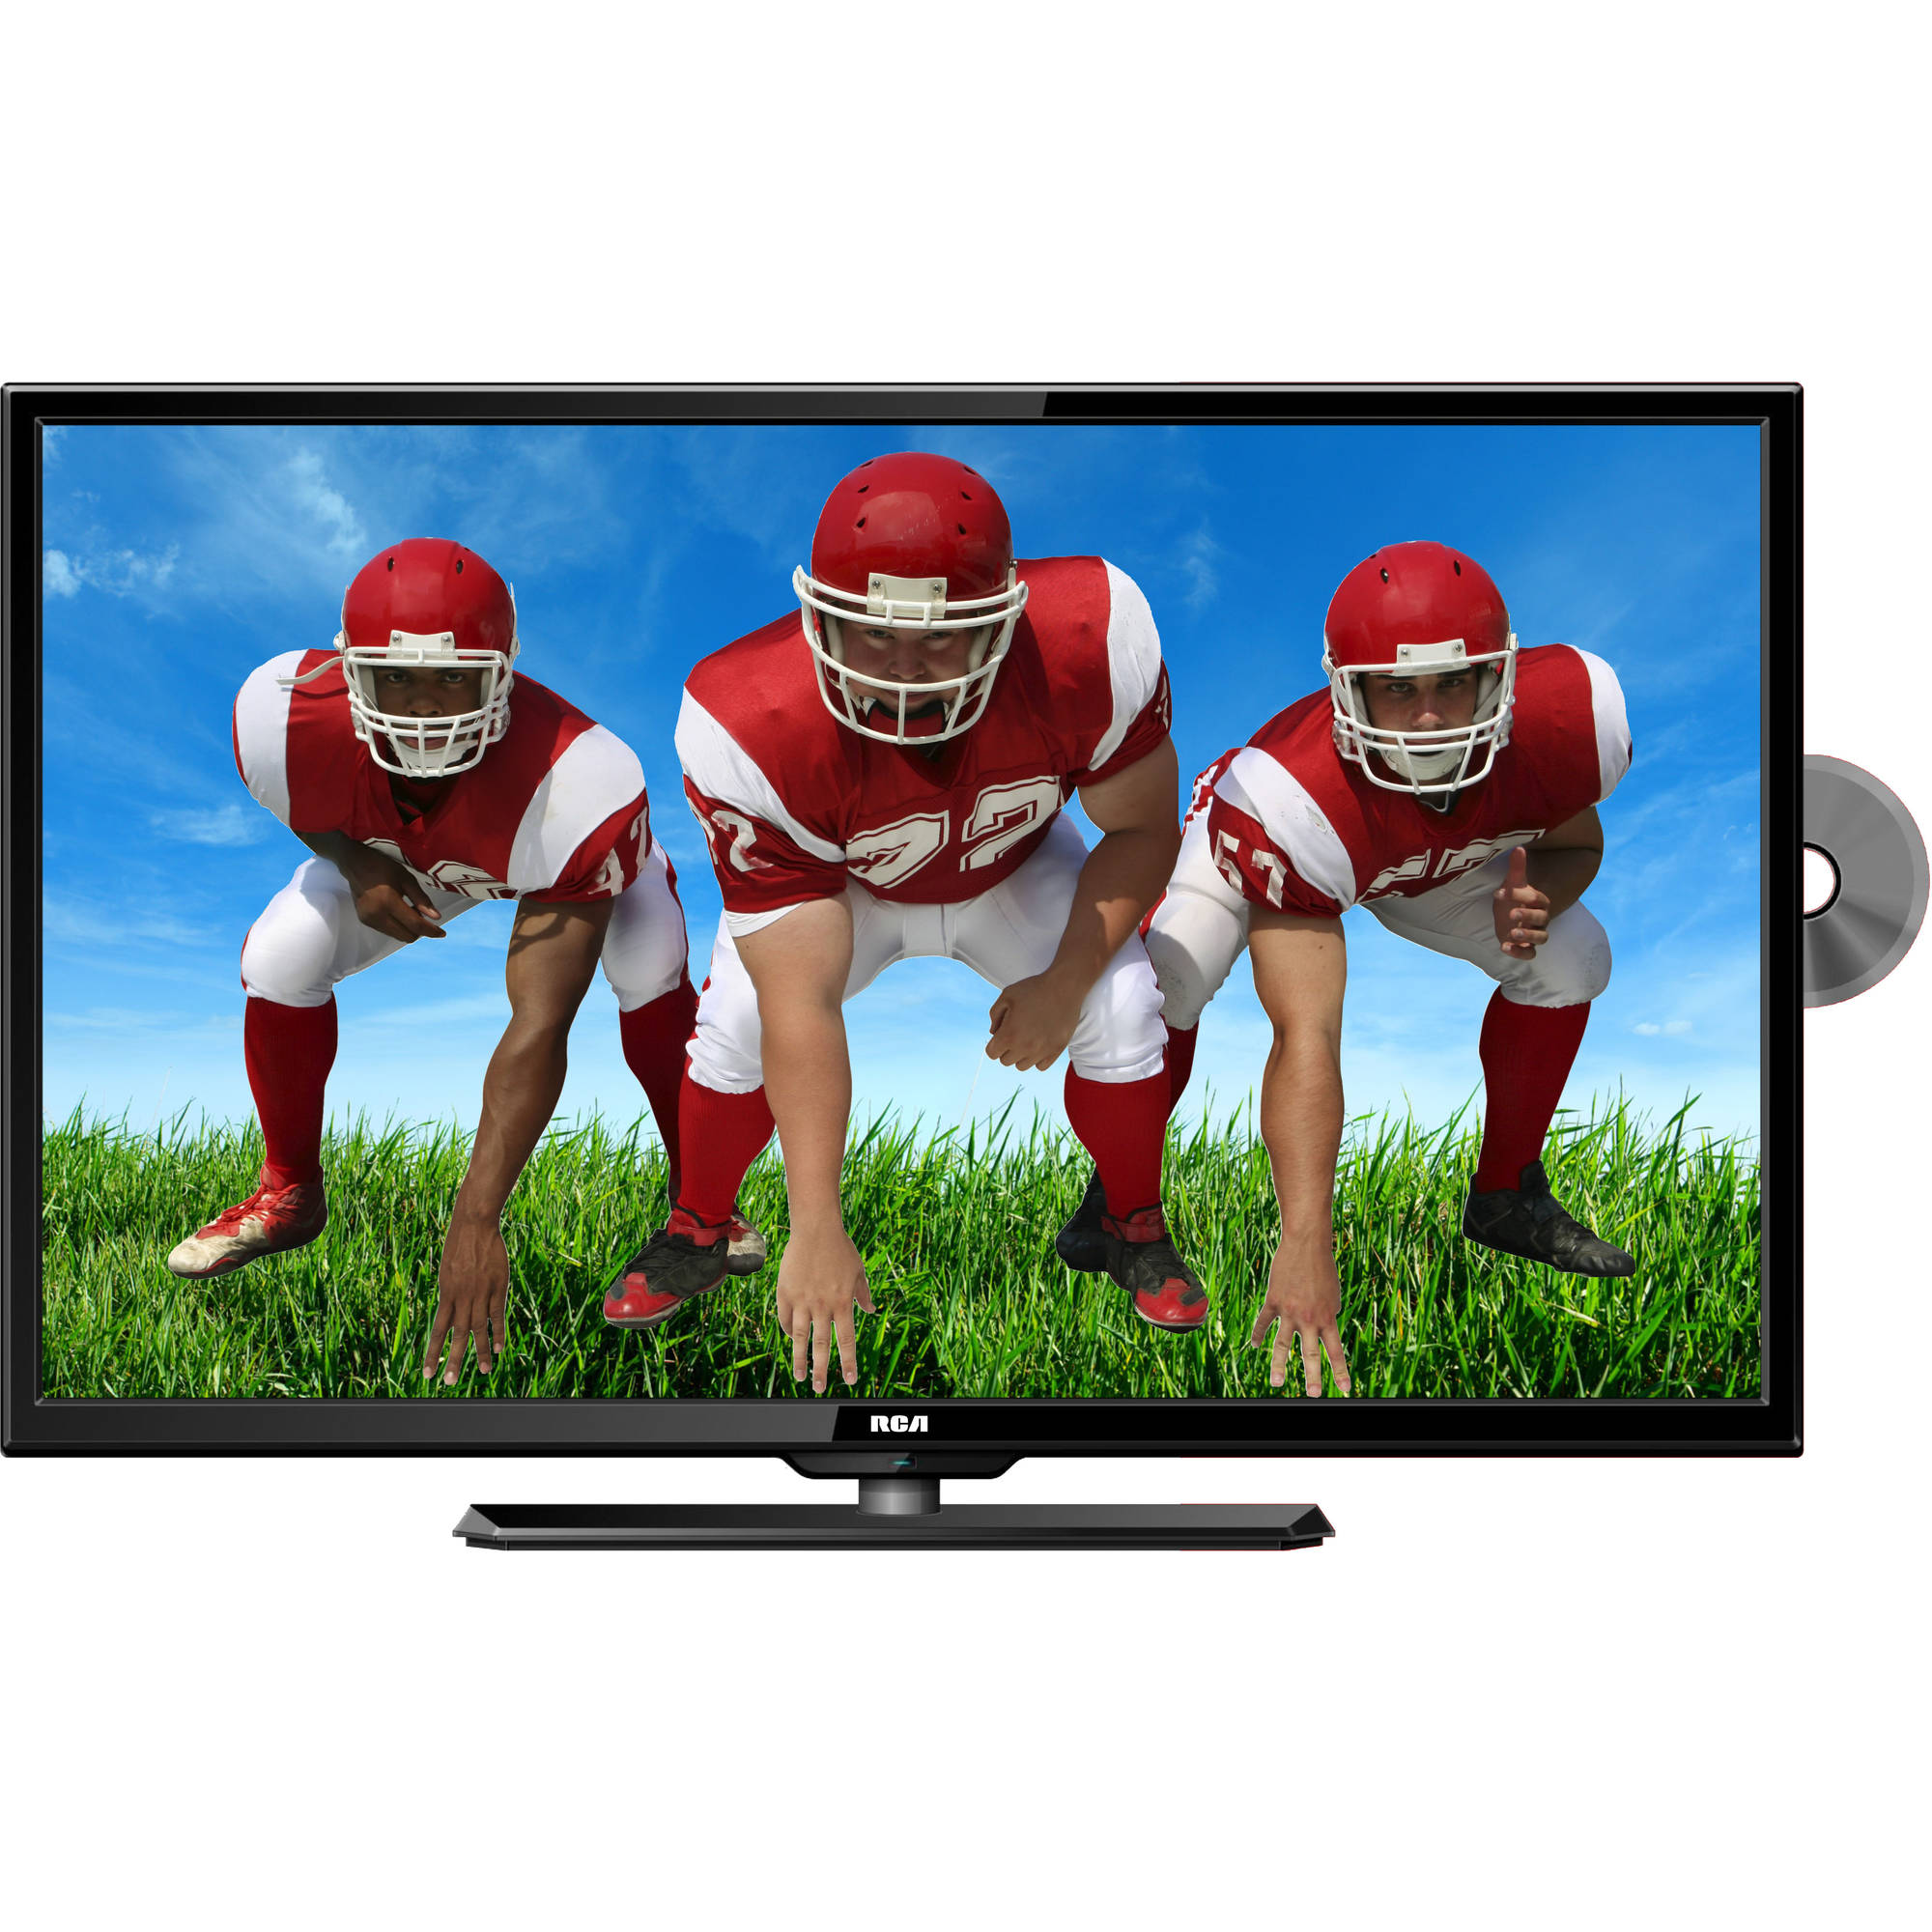 "RCA 40"" Class FHD (1080P) FHD (1080P) TV (RLDEDV4001-A) with Built-in DVD by RCA"